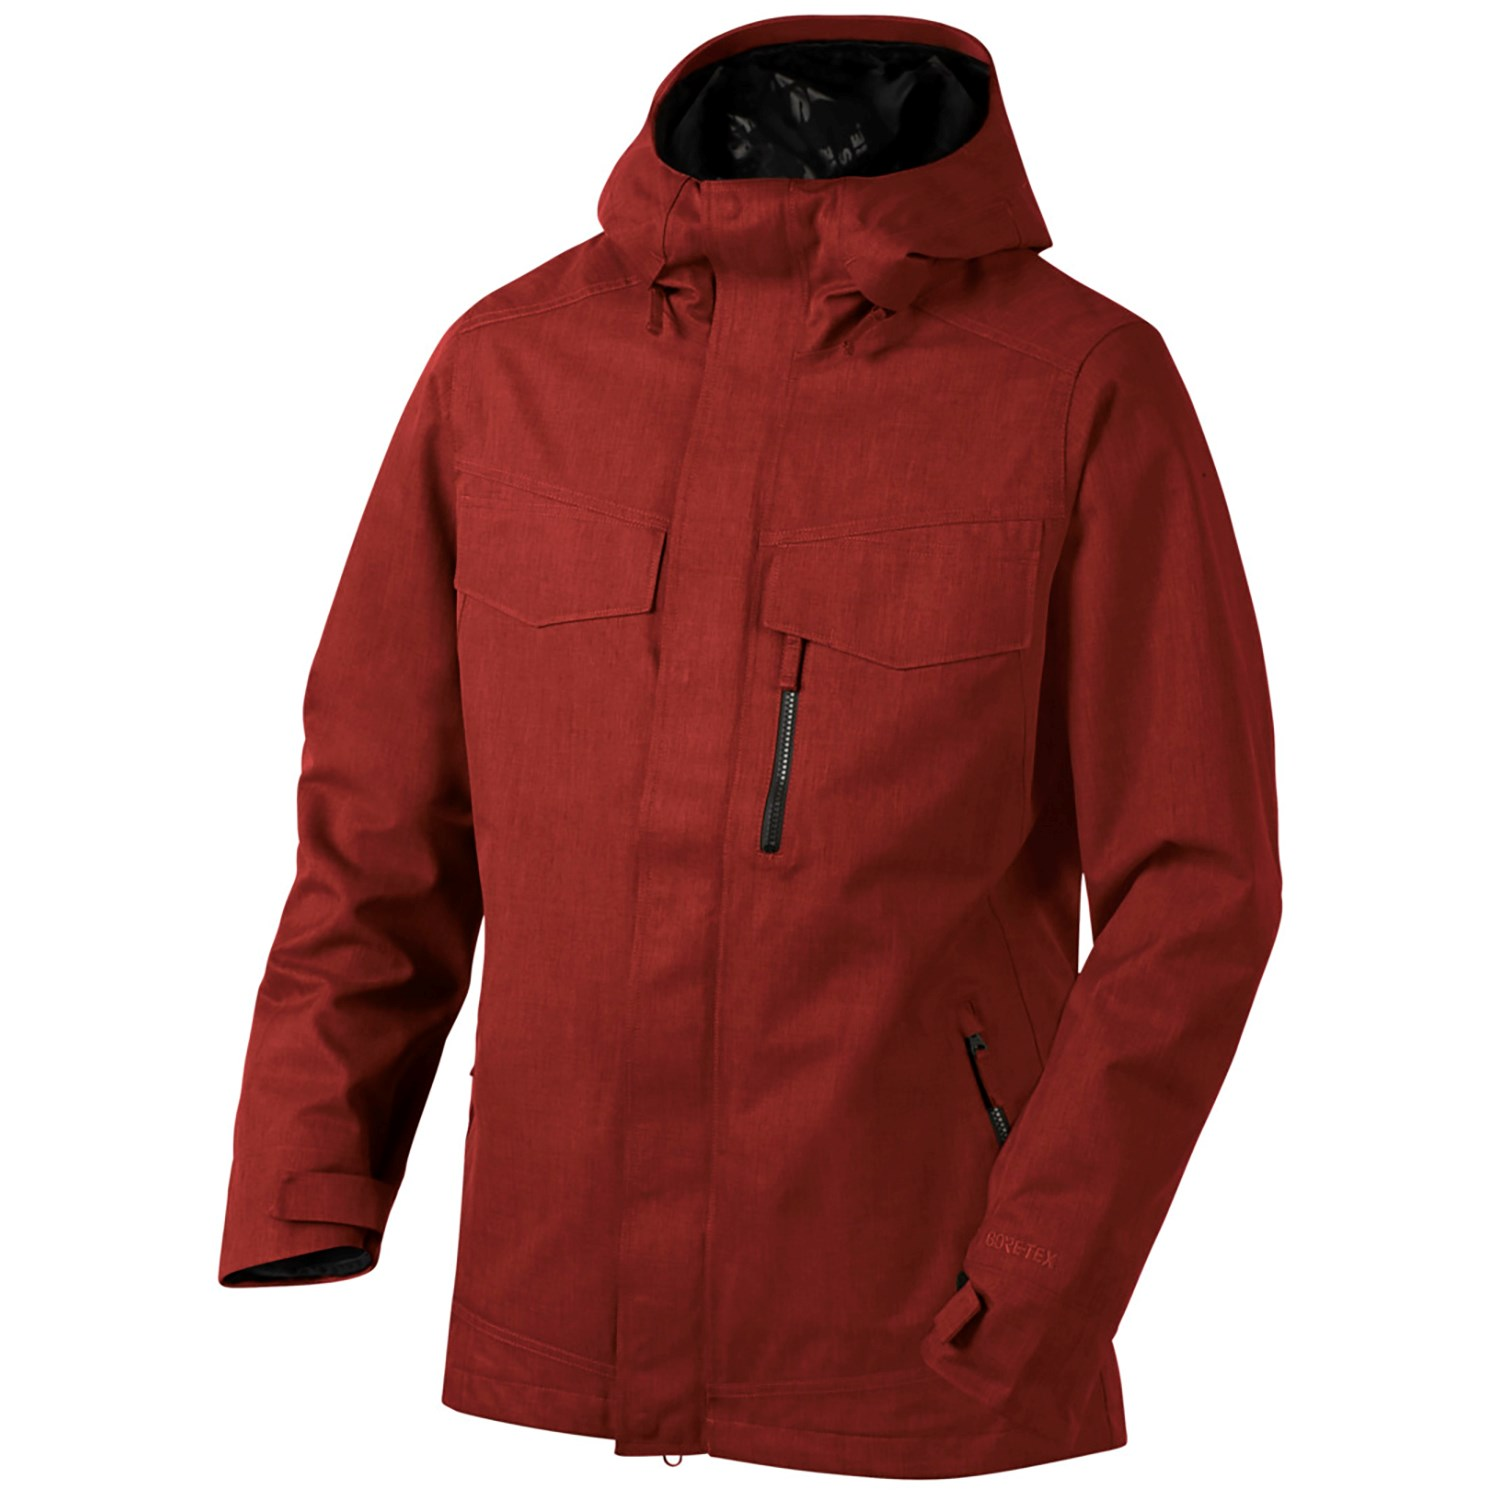 oakley ski jackets on sale  oakley baldy 2l gore tex? biozone? jacket $399.95 $299.99 sale